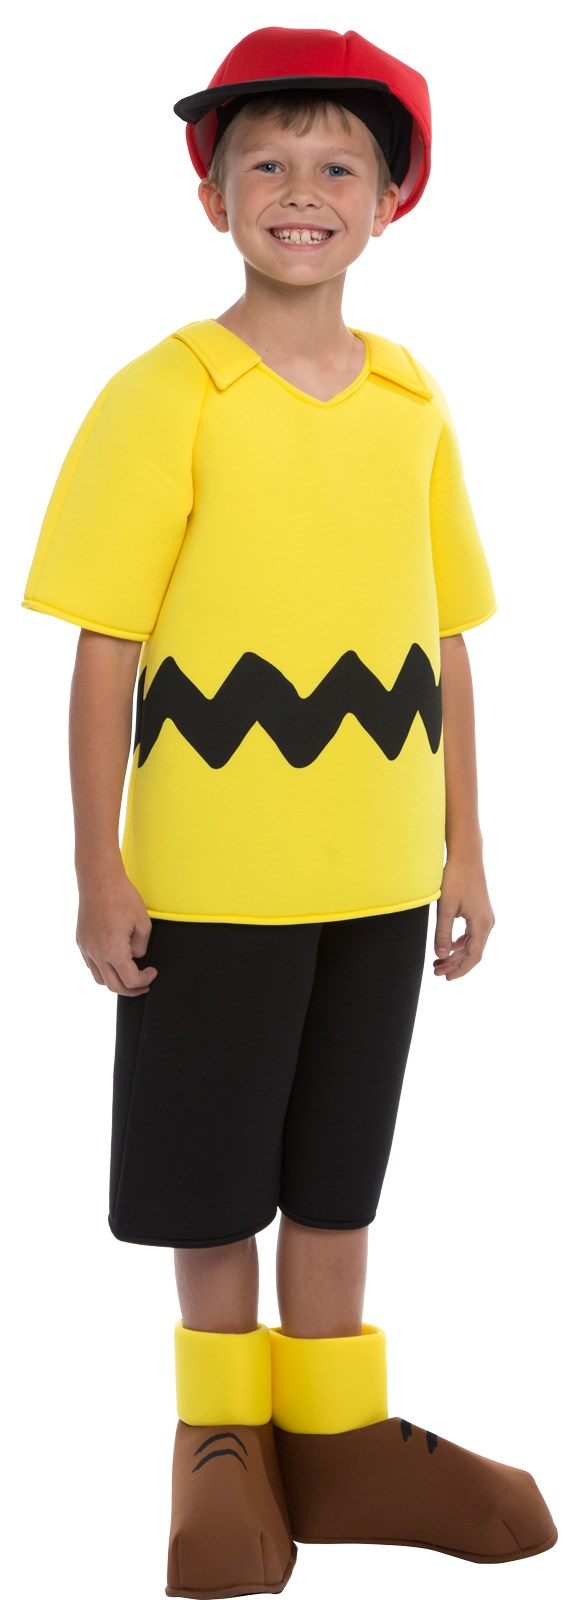 Peanuts Halloween Costumes | BuyCostumes.com